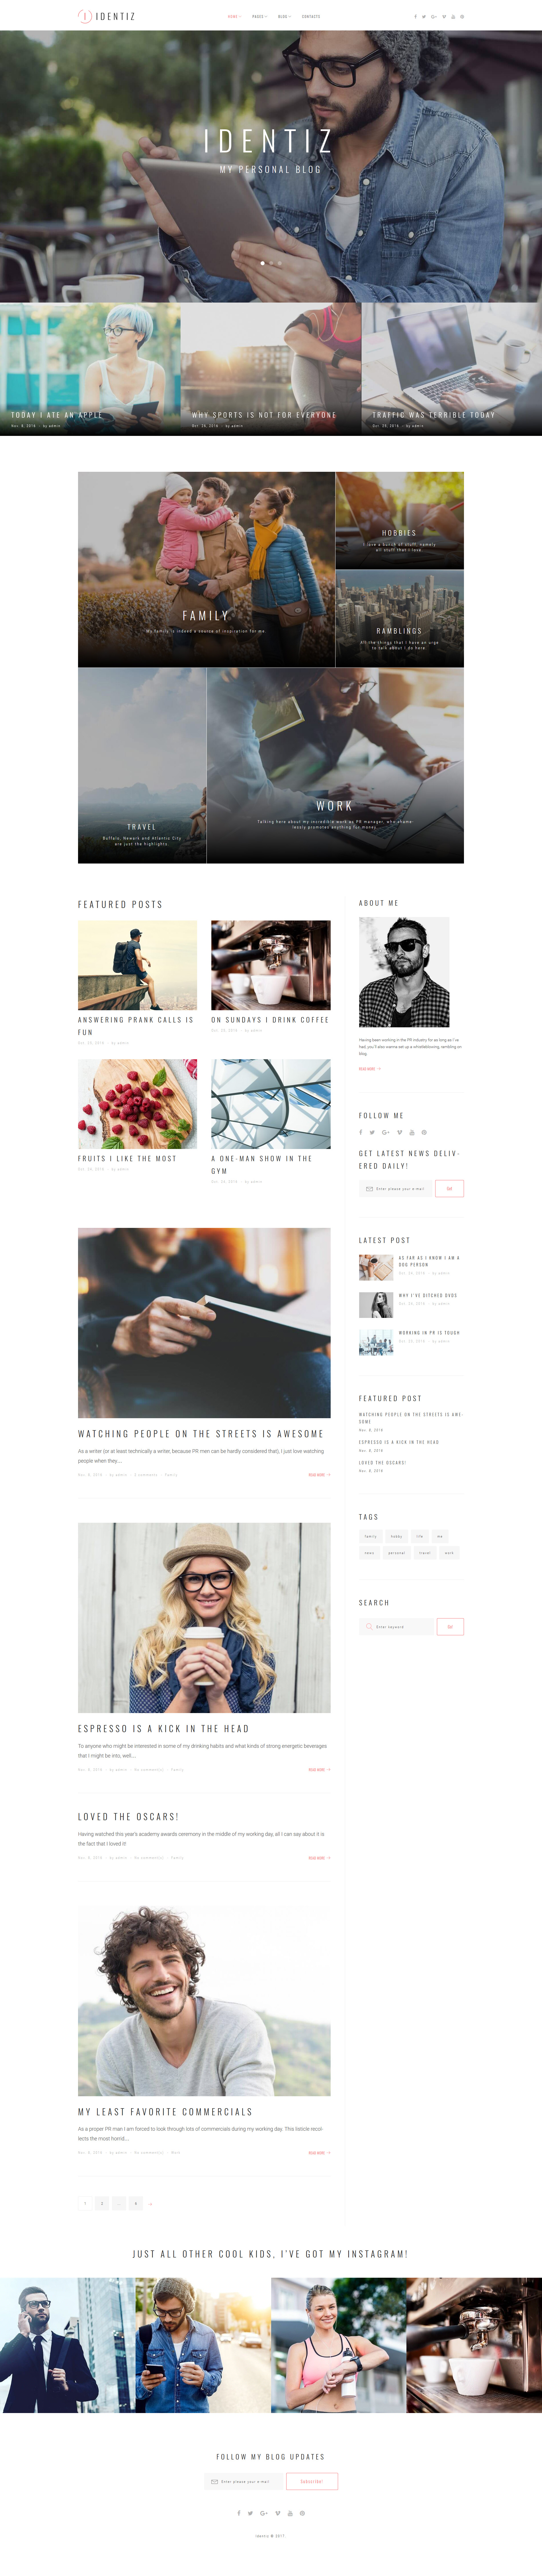 Identiz - Personal Blog WordPress Theme